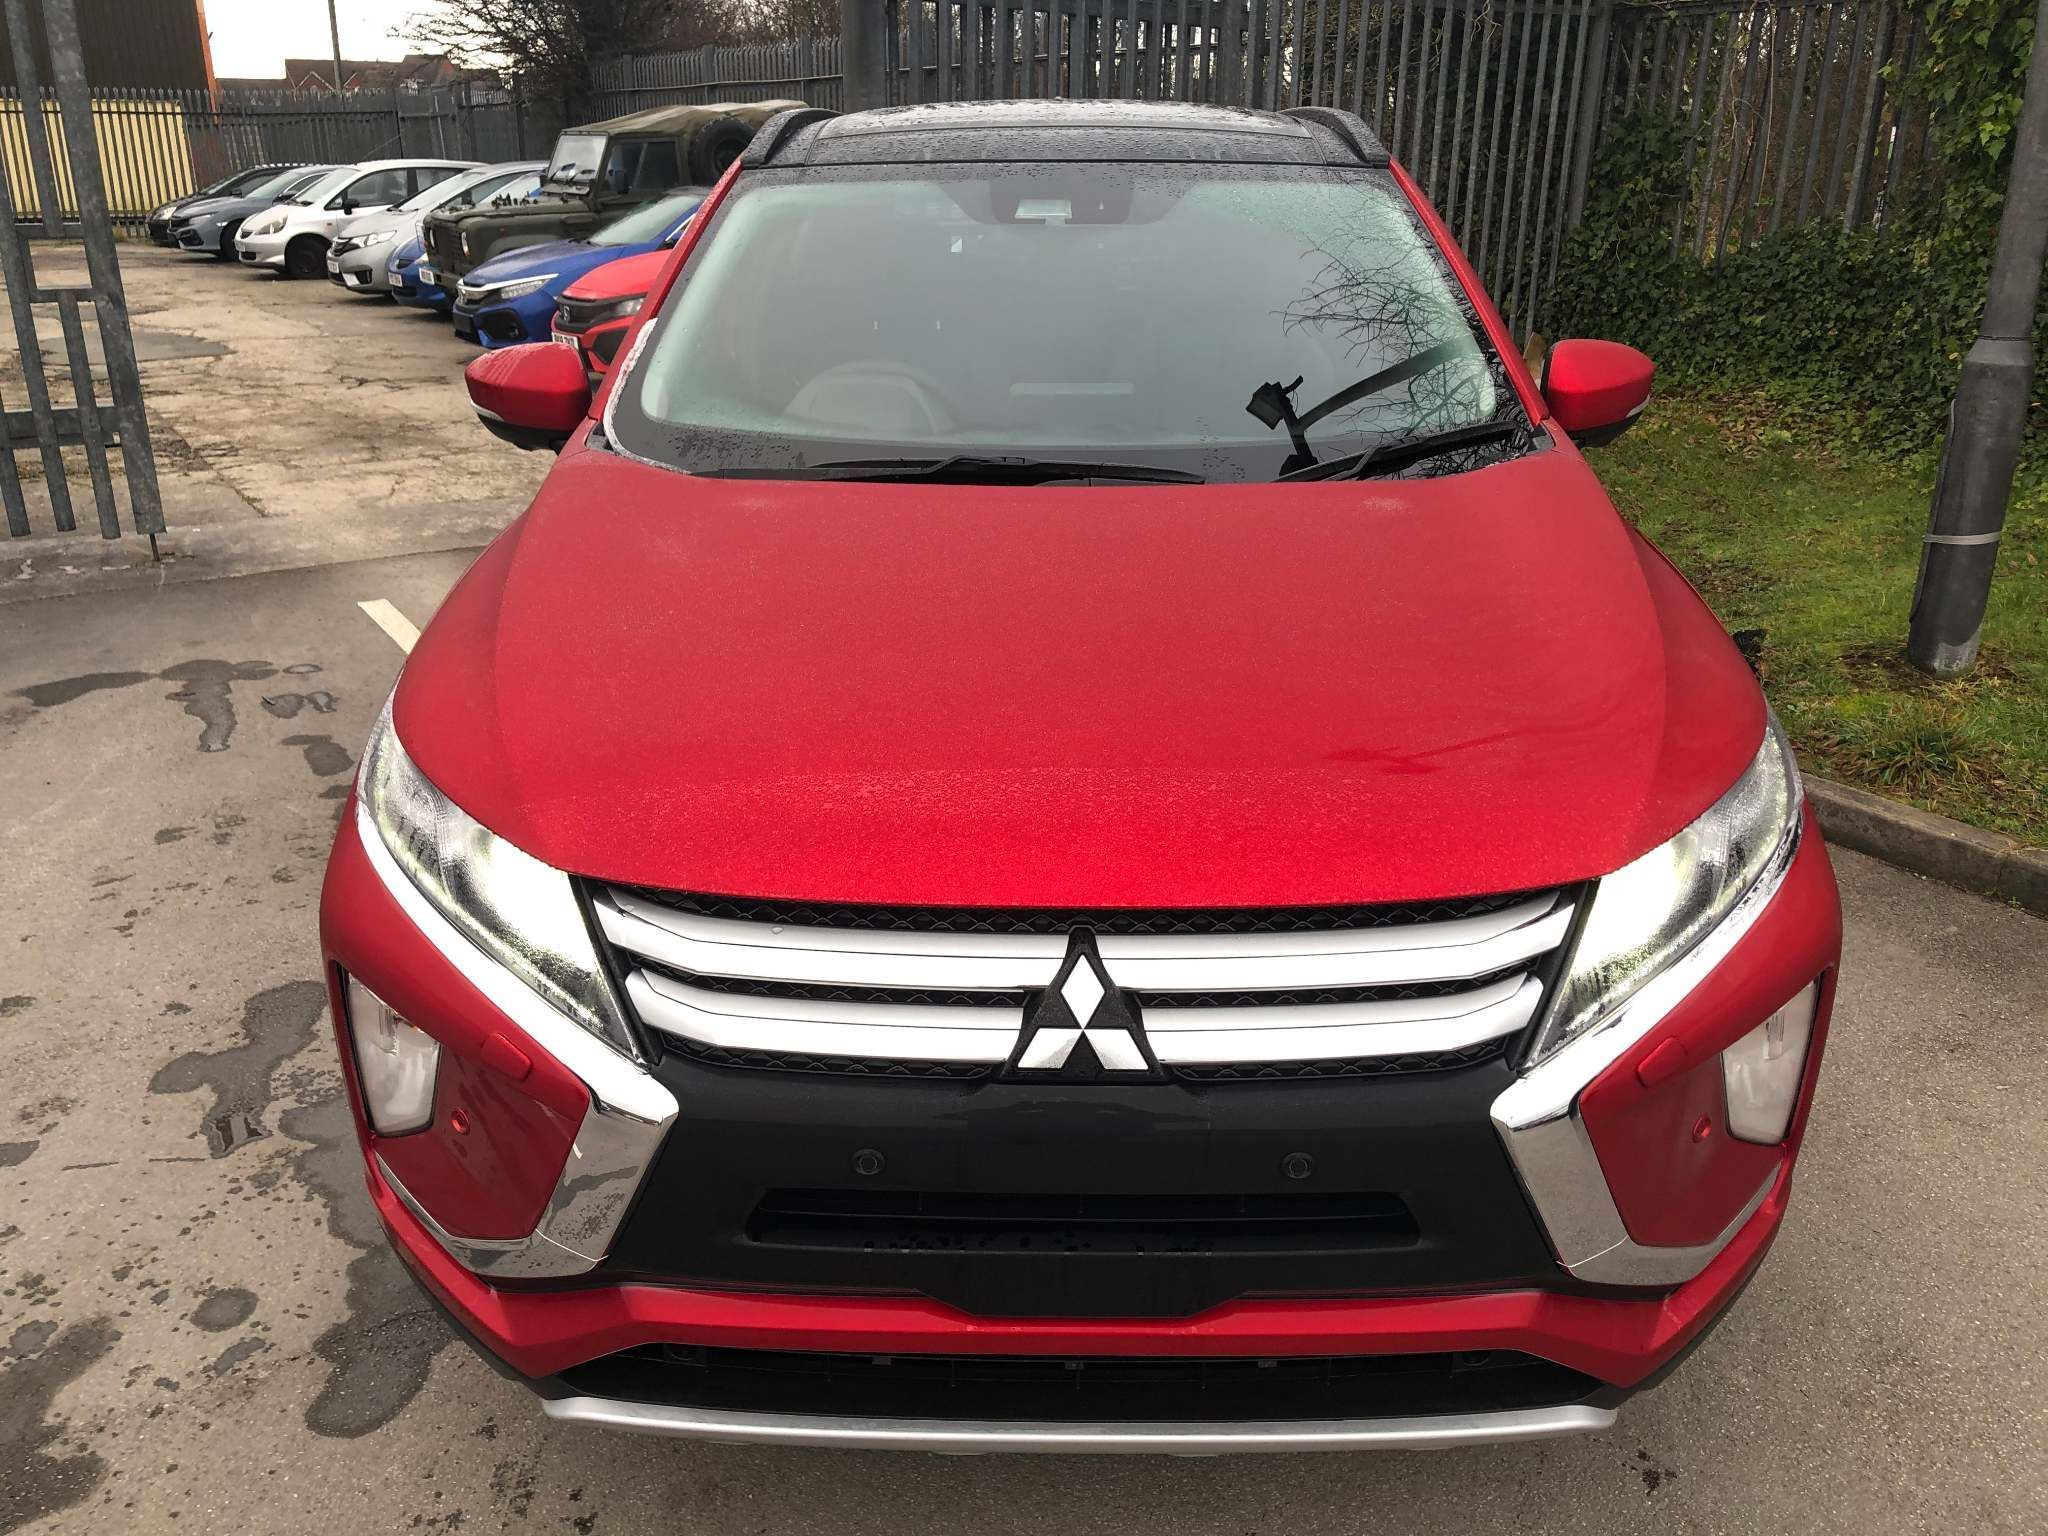 Mitsubishi Eclipse Cross Images